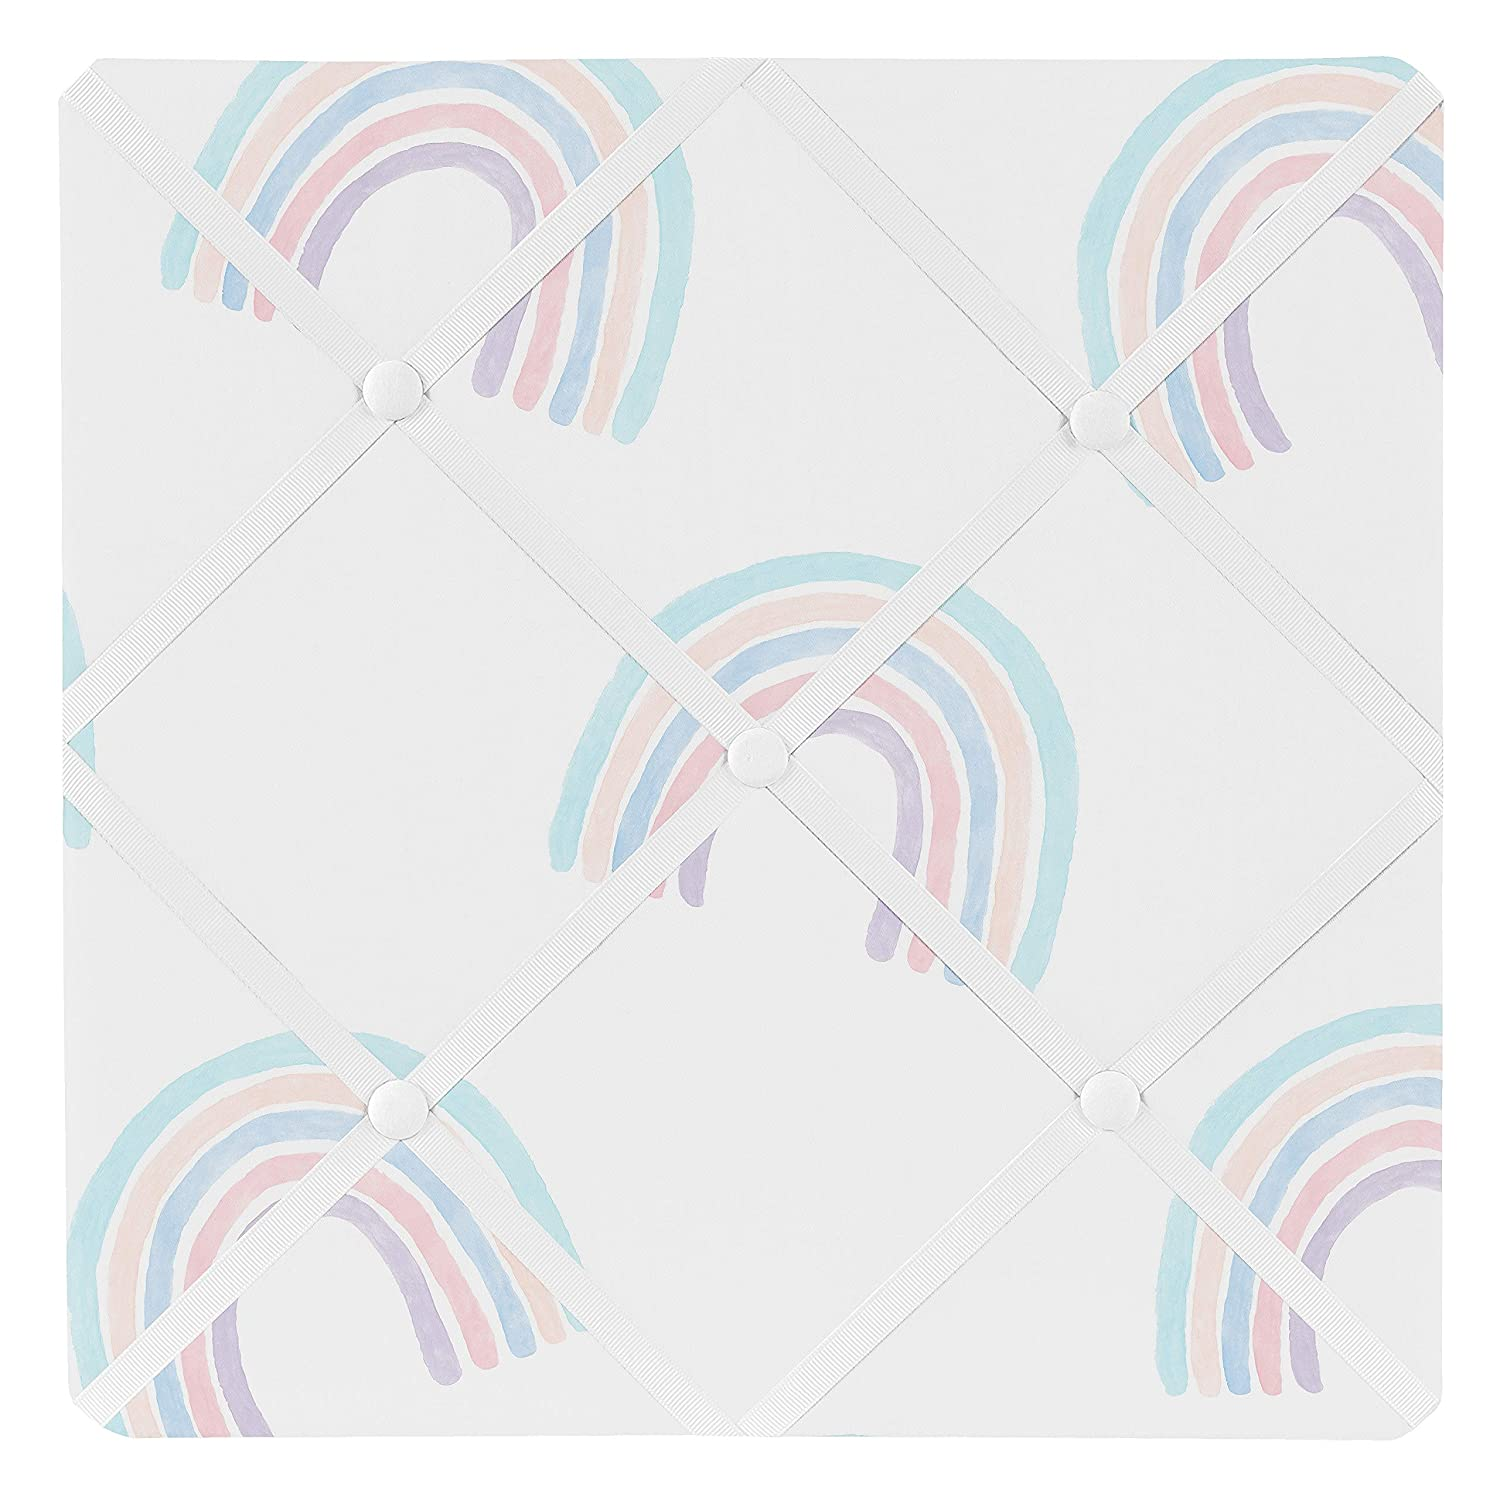 Sweet Jojo Designs Pastel Rainbow Fabric Memory Memo Photo Bulletin Board Purple Blush Pink Blue and White Teal